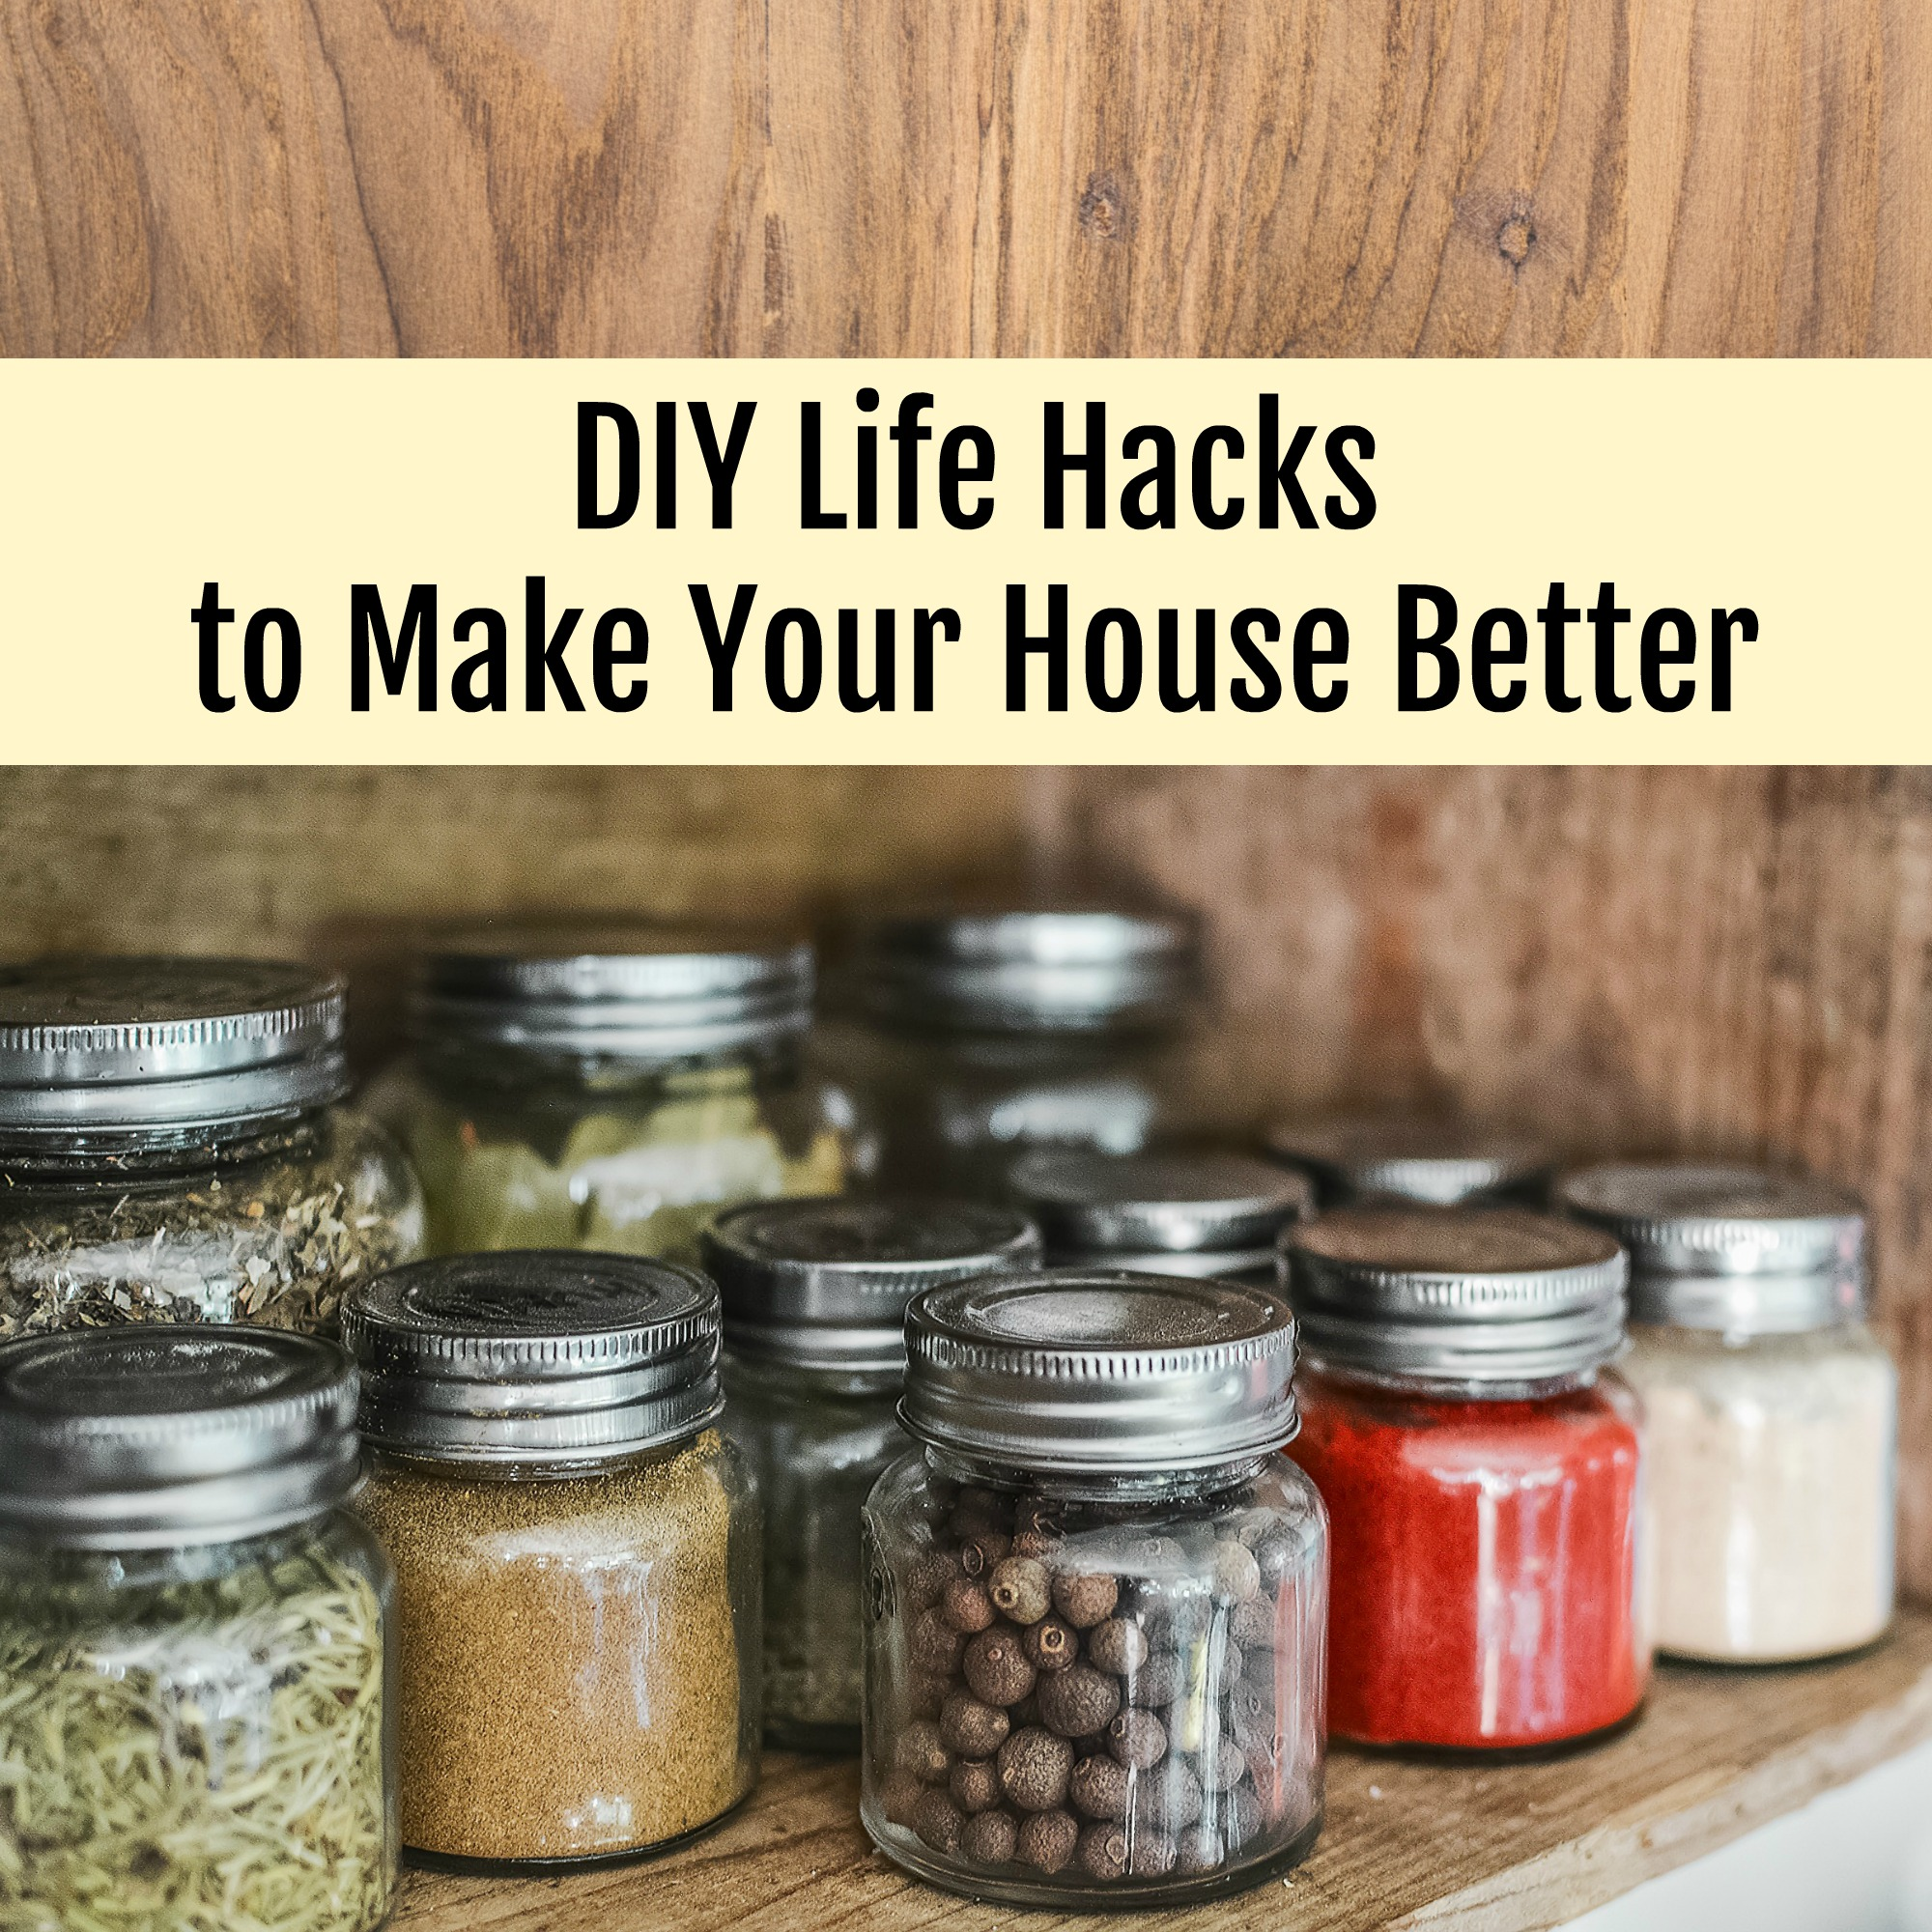 DIY Life Hacks to Make Your House Better